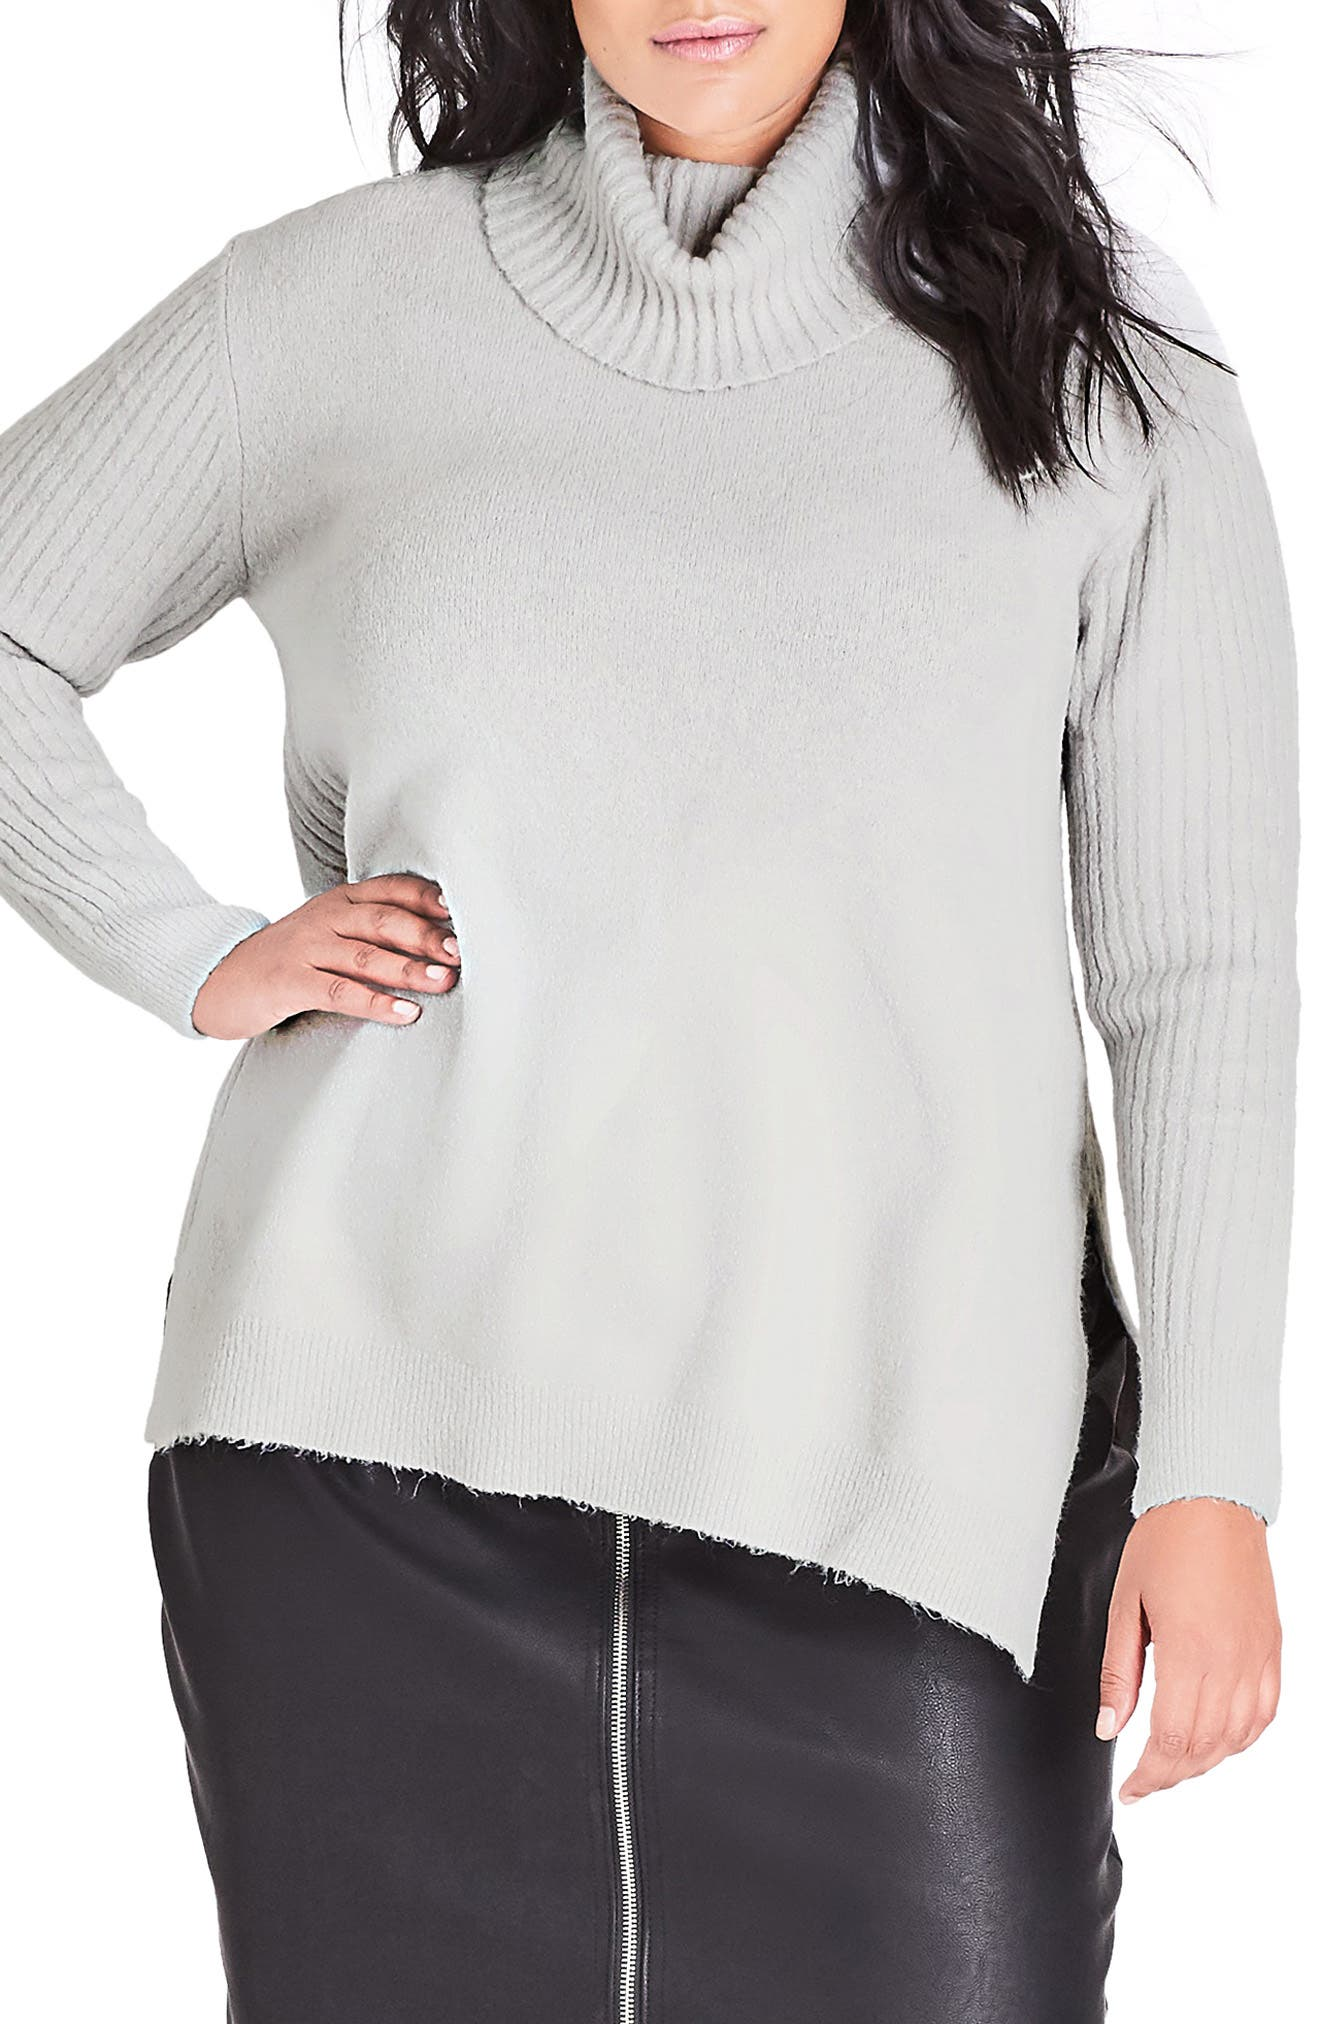 CITY CHIC,                             Turtleneck Sweater,                             Main thumbnail 1, color,                             SILVER MARLE